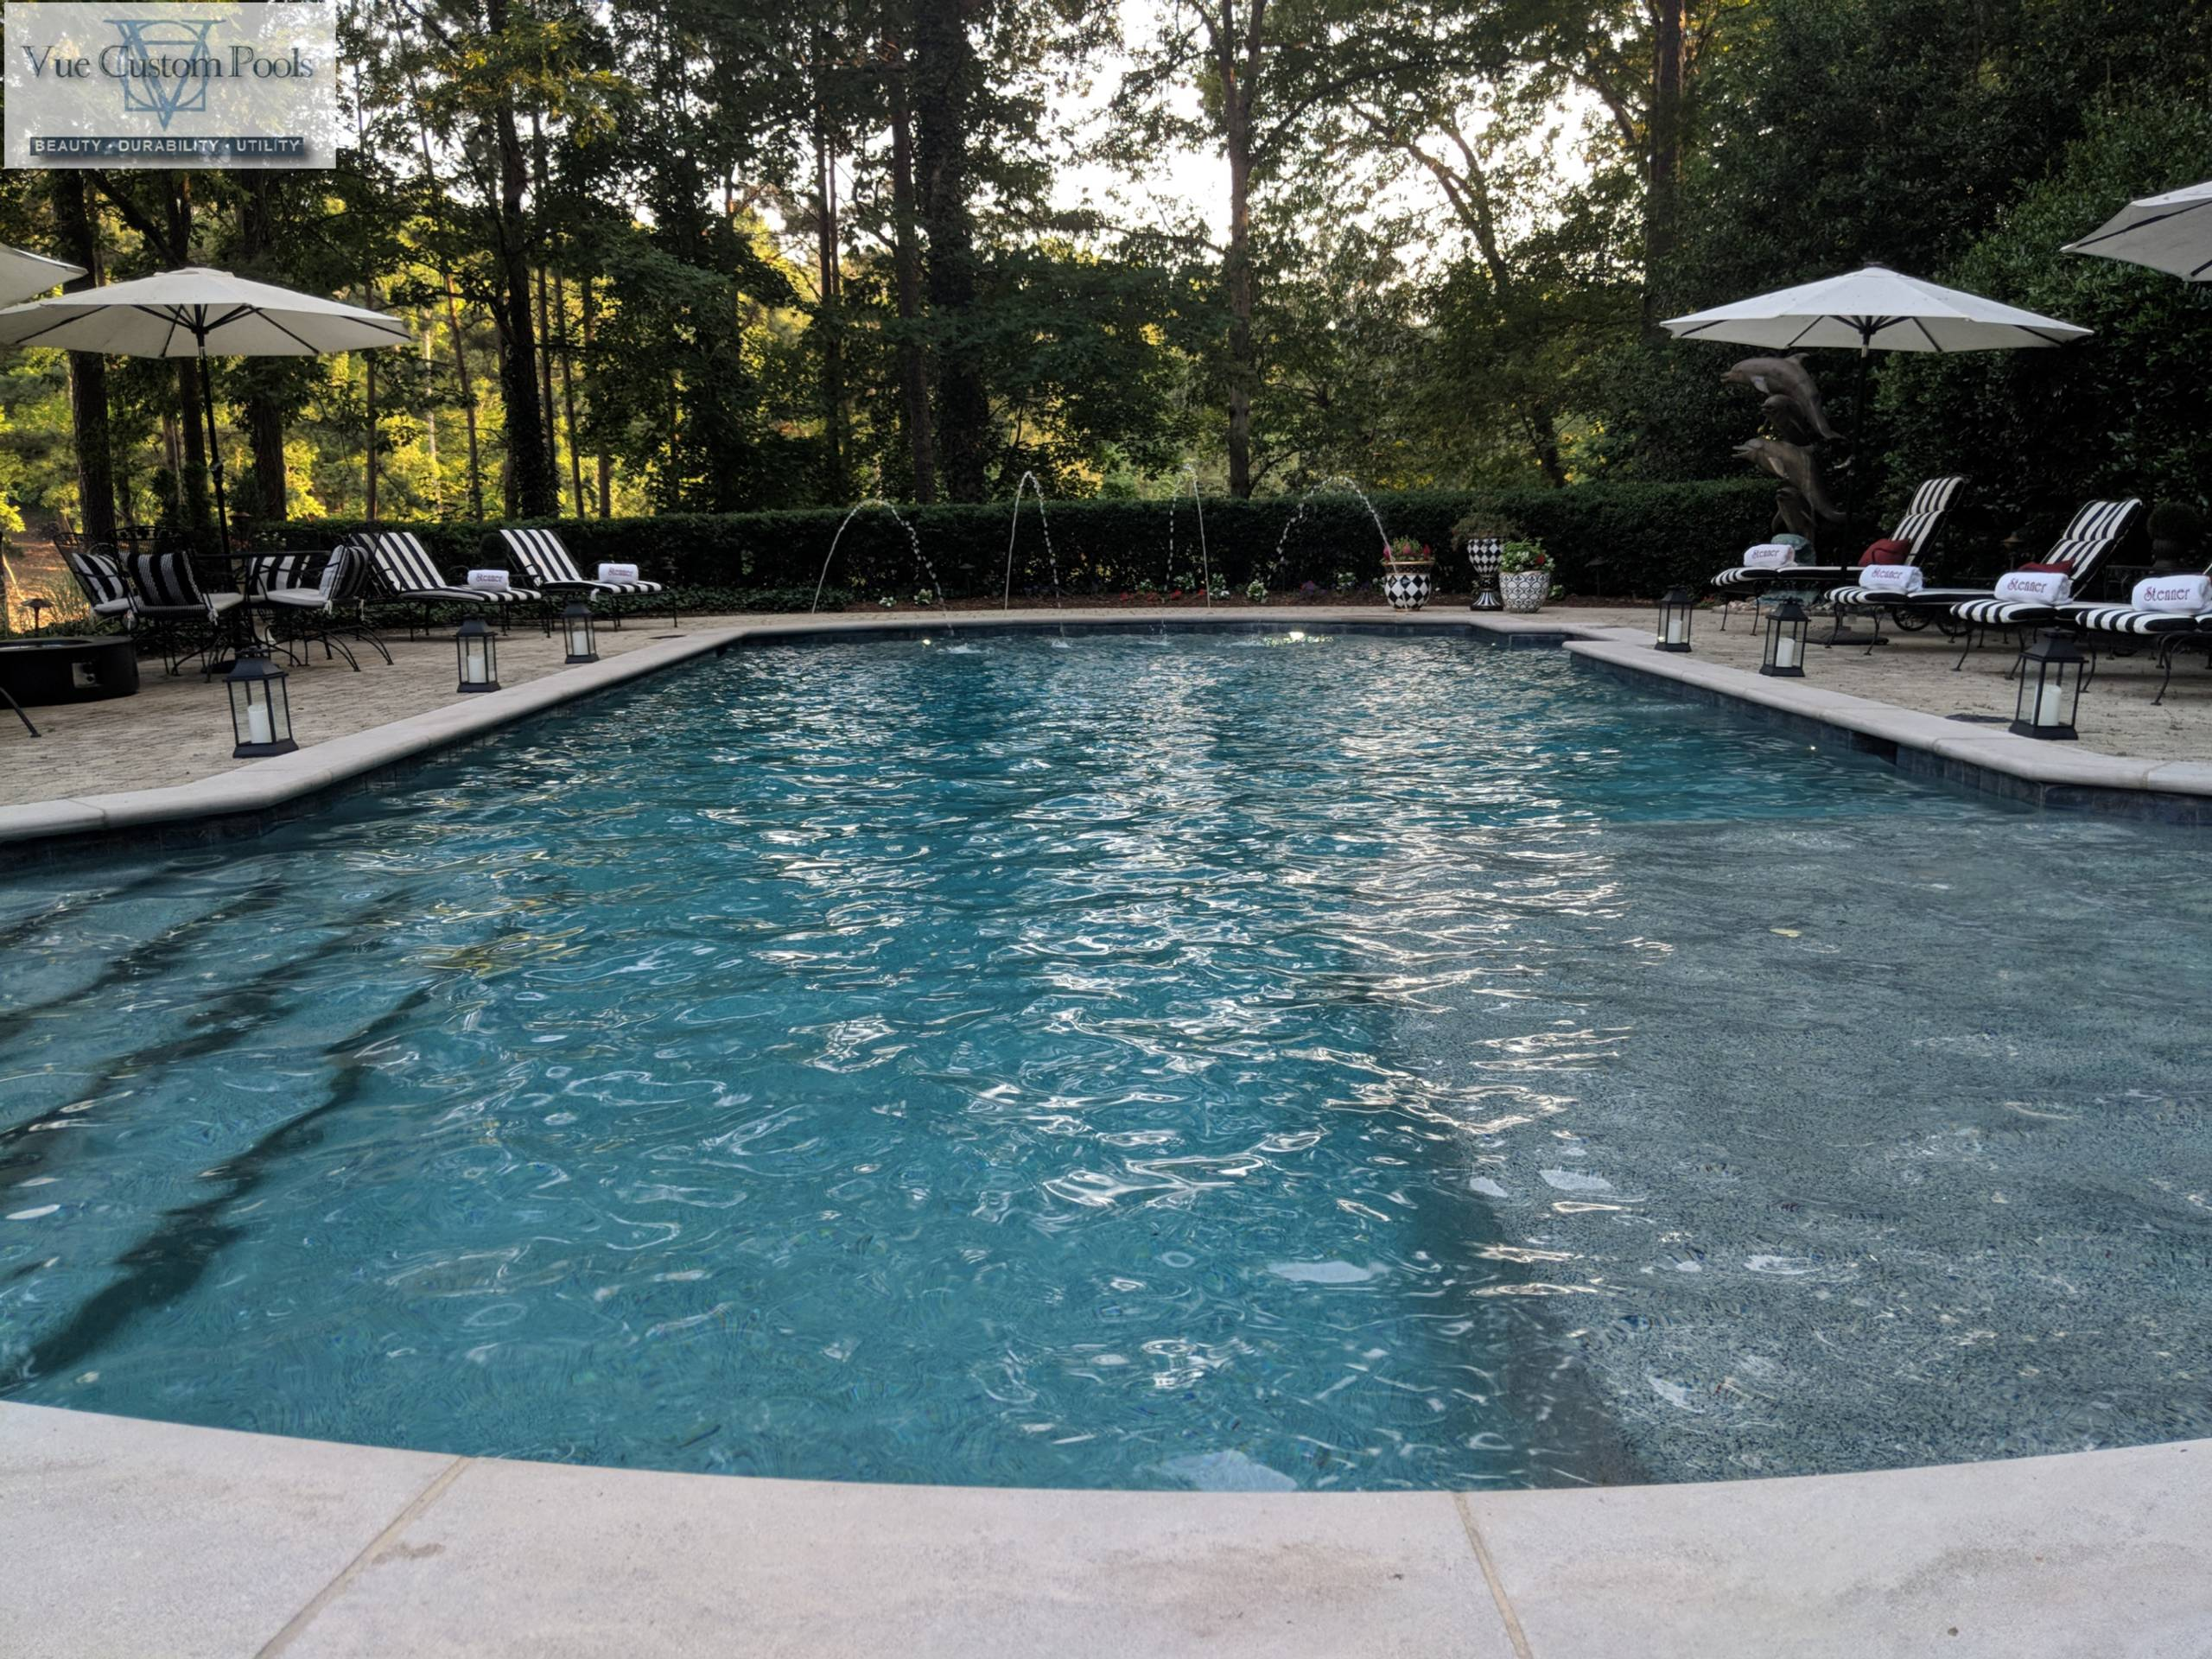 Renovation to bring a old pool new life in Chapel Hill